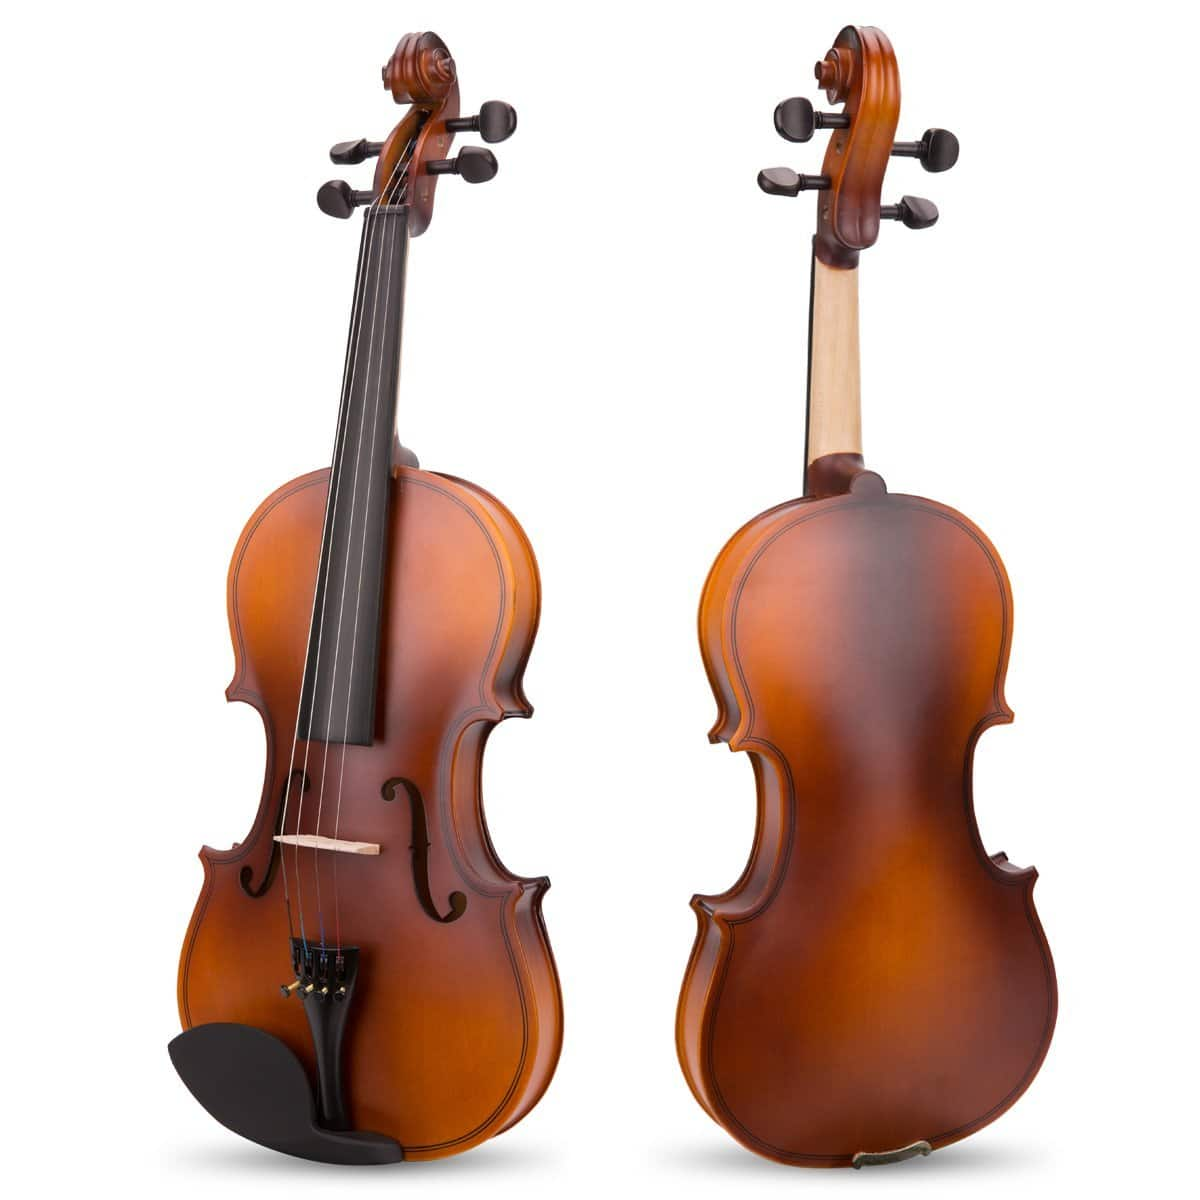 Handcrafted Solid Wood Small Guitar or Full Size Violin $19-$38